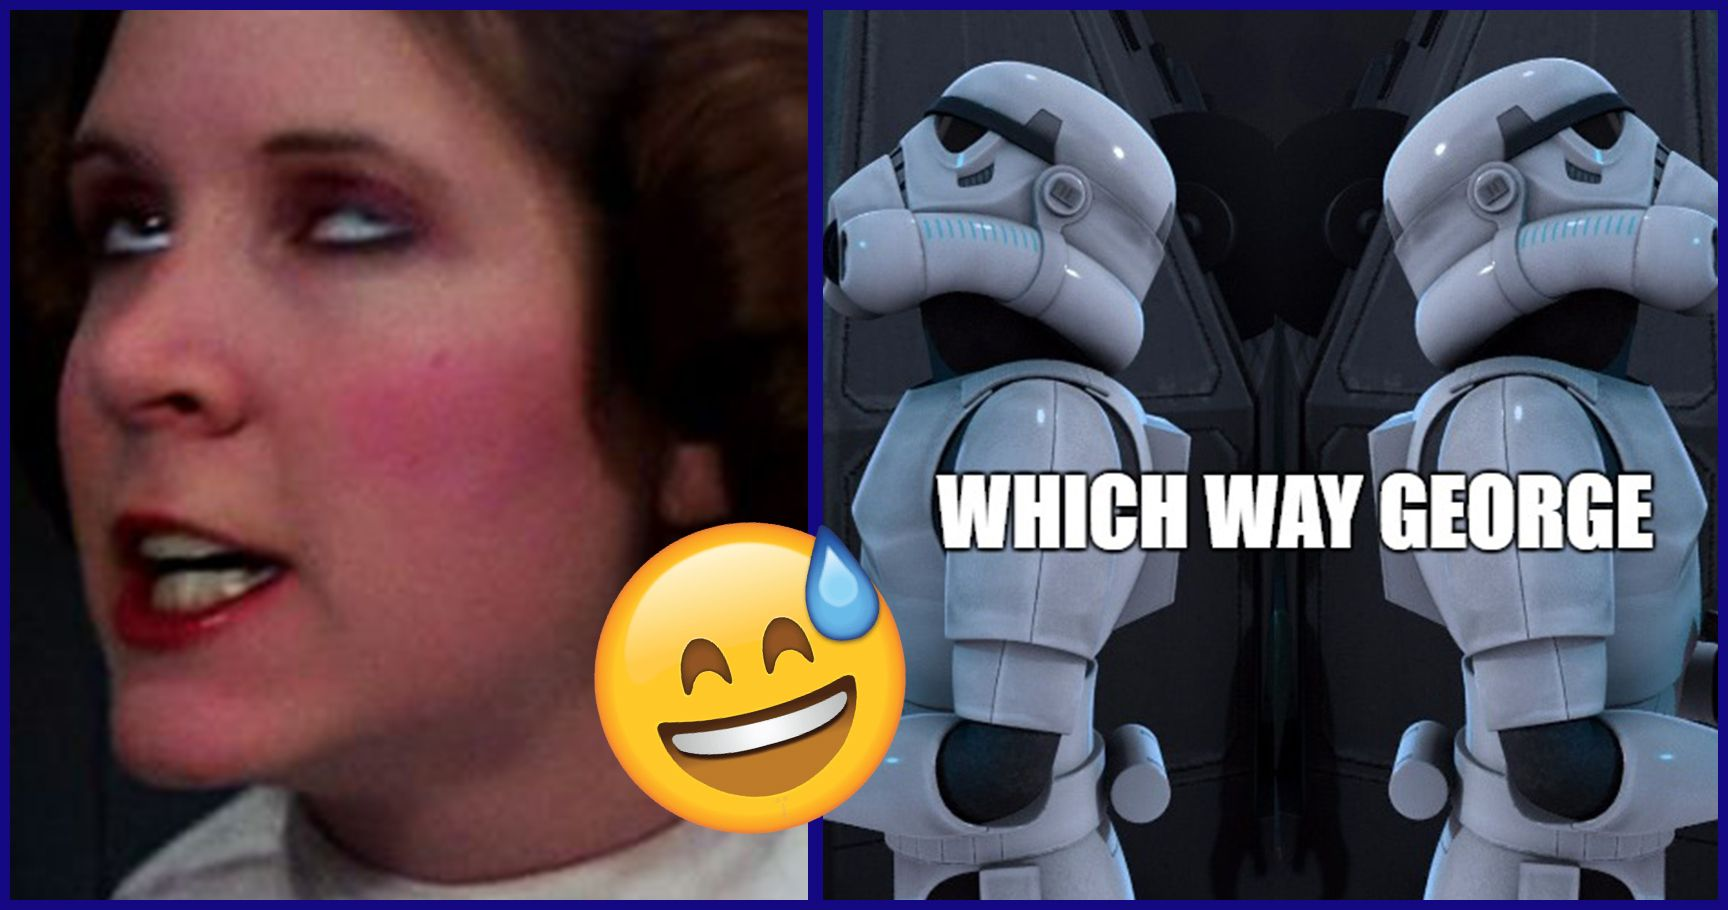 15 Times Stormtroopers Ruined Star Wars With Their Stupidity